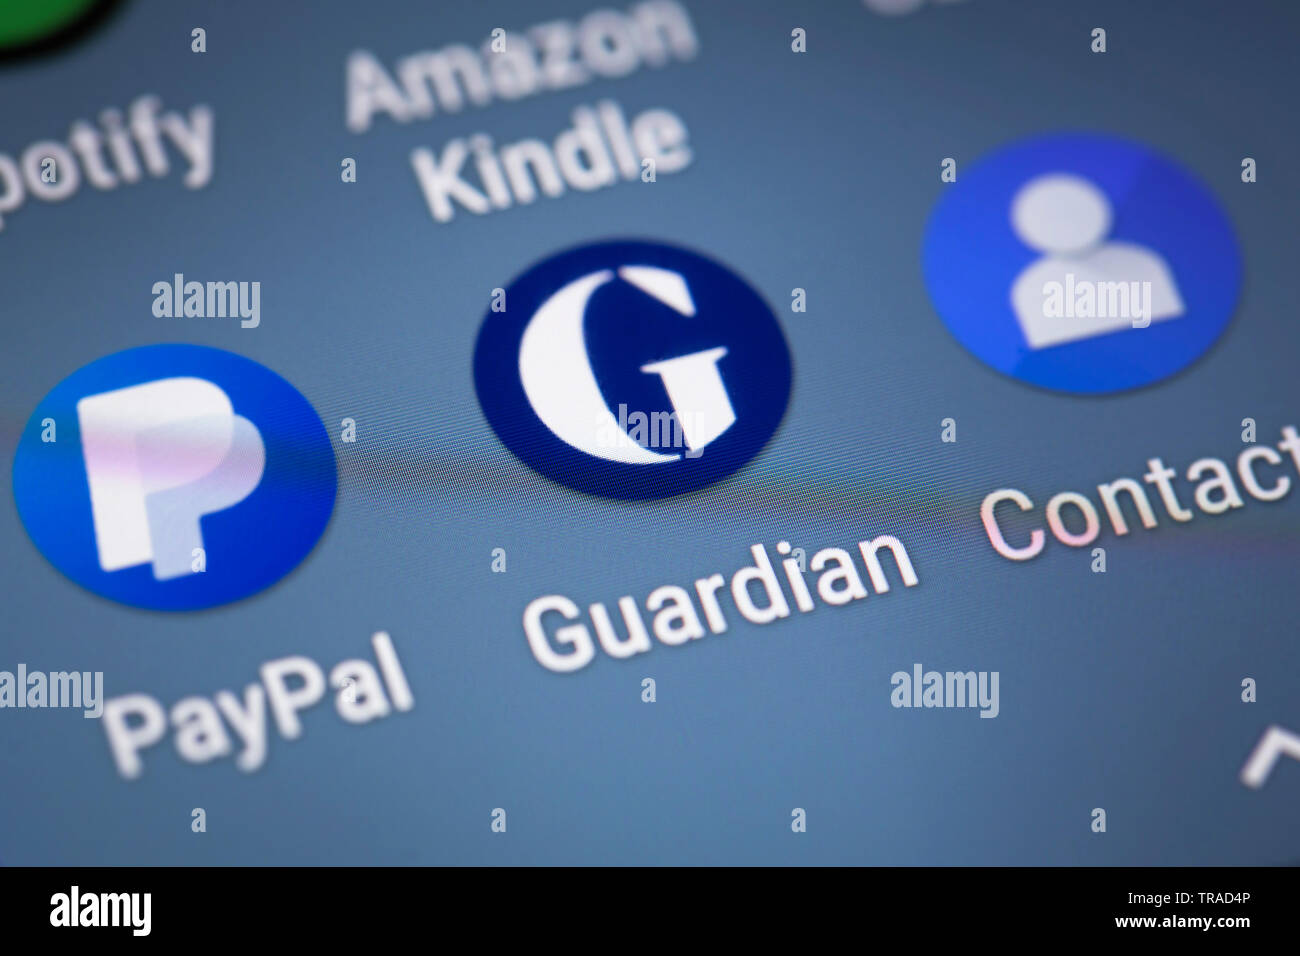 Guardian logo icon on mobile phone screen Stock Photo